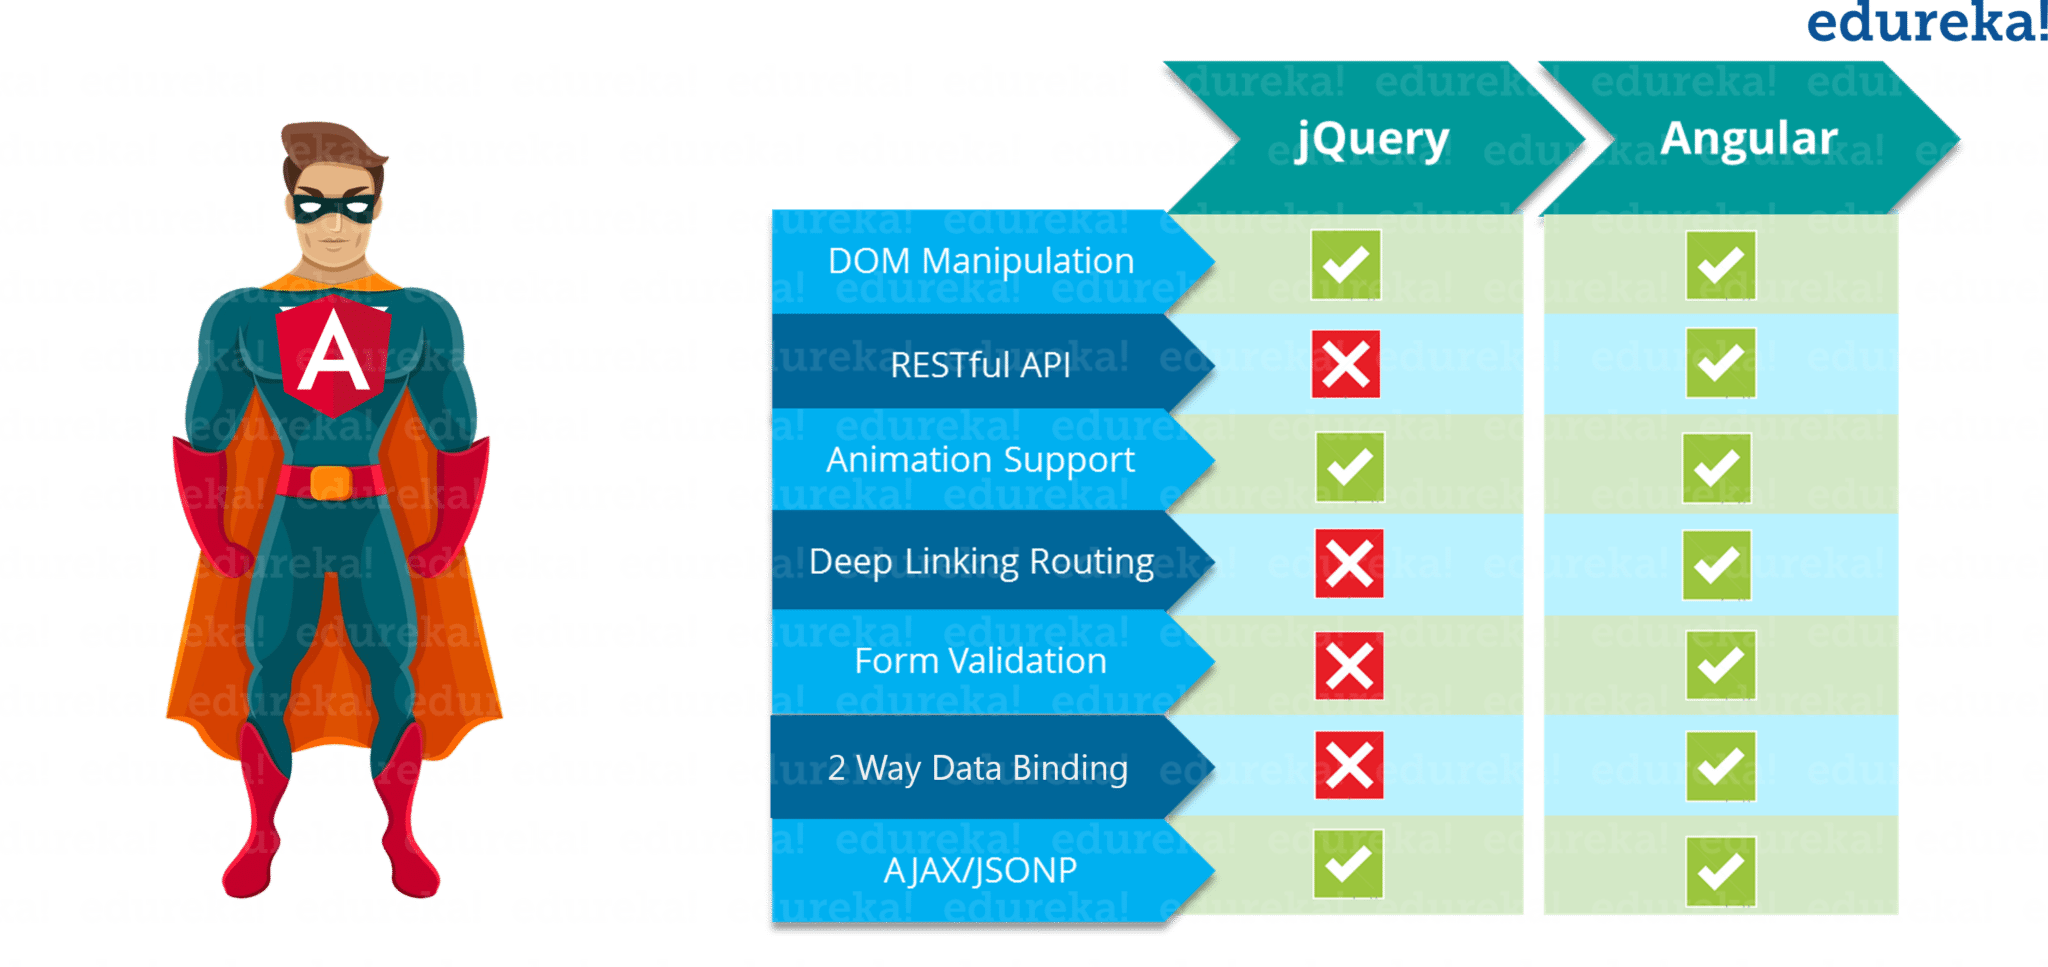 Jquery vs Angular - Angular Tutorial - Edureka